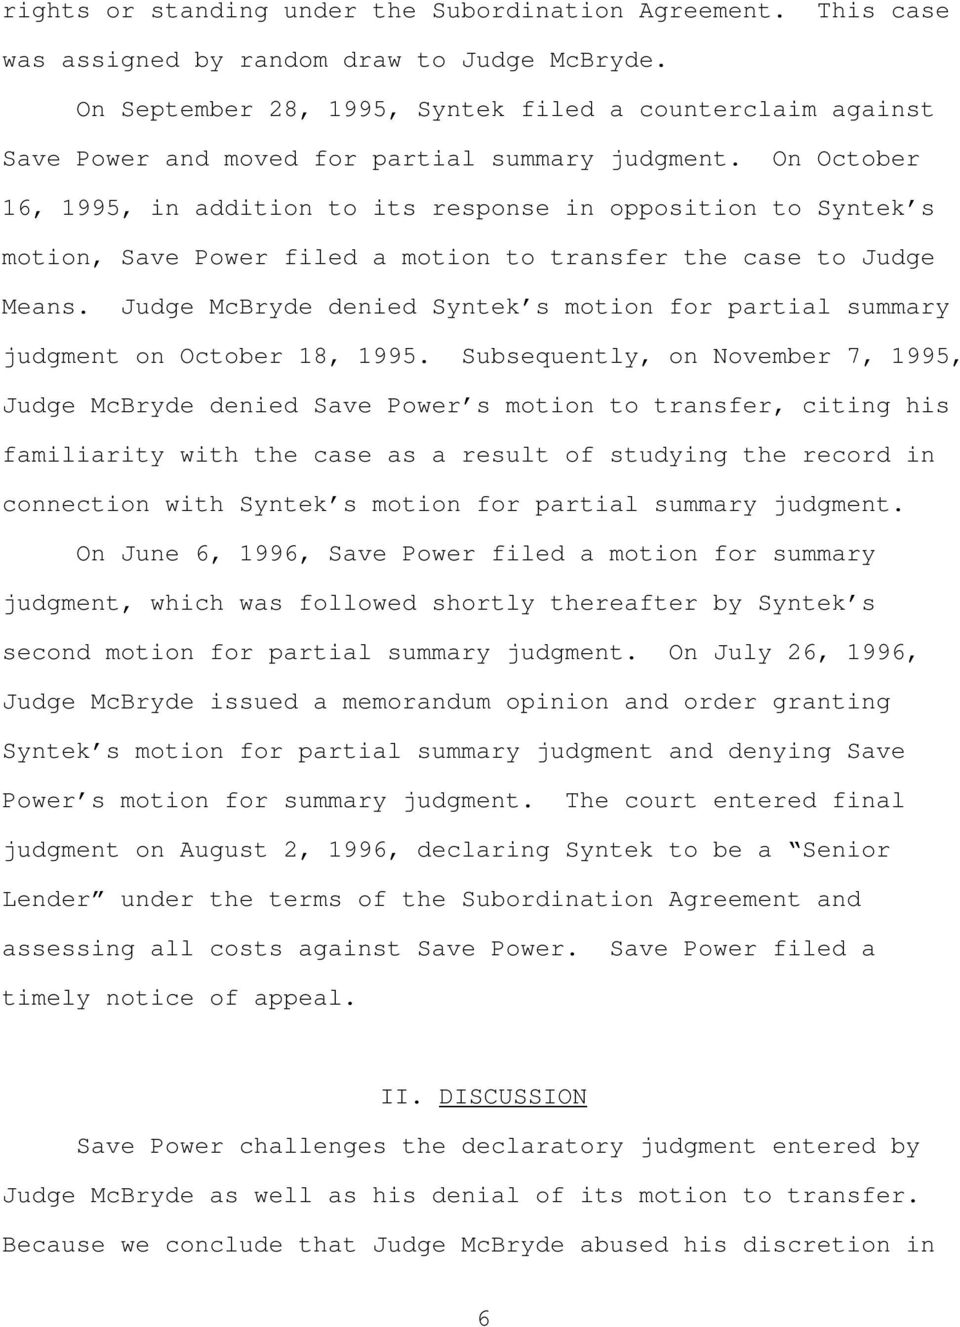 On October 16, 1995, in addition to its response in opposition to Syntek s motion, Save Power filed a motion to transfer the case to Judge Means.